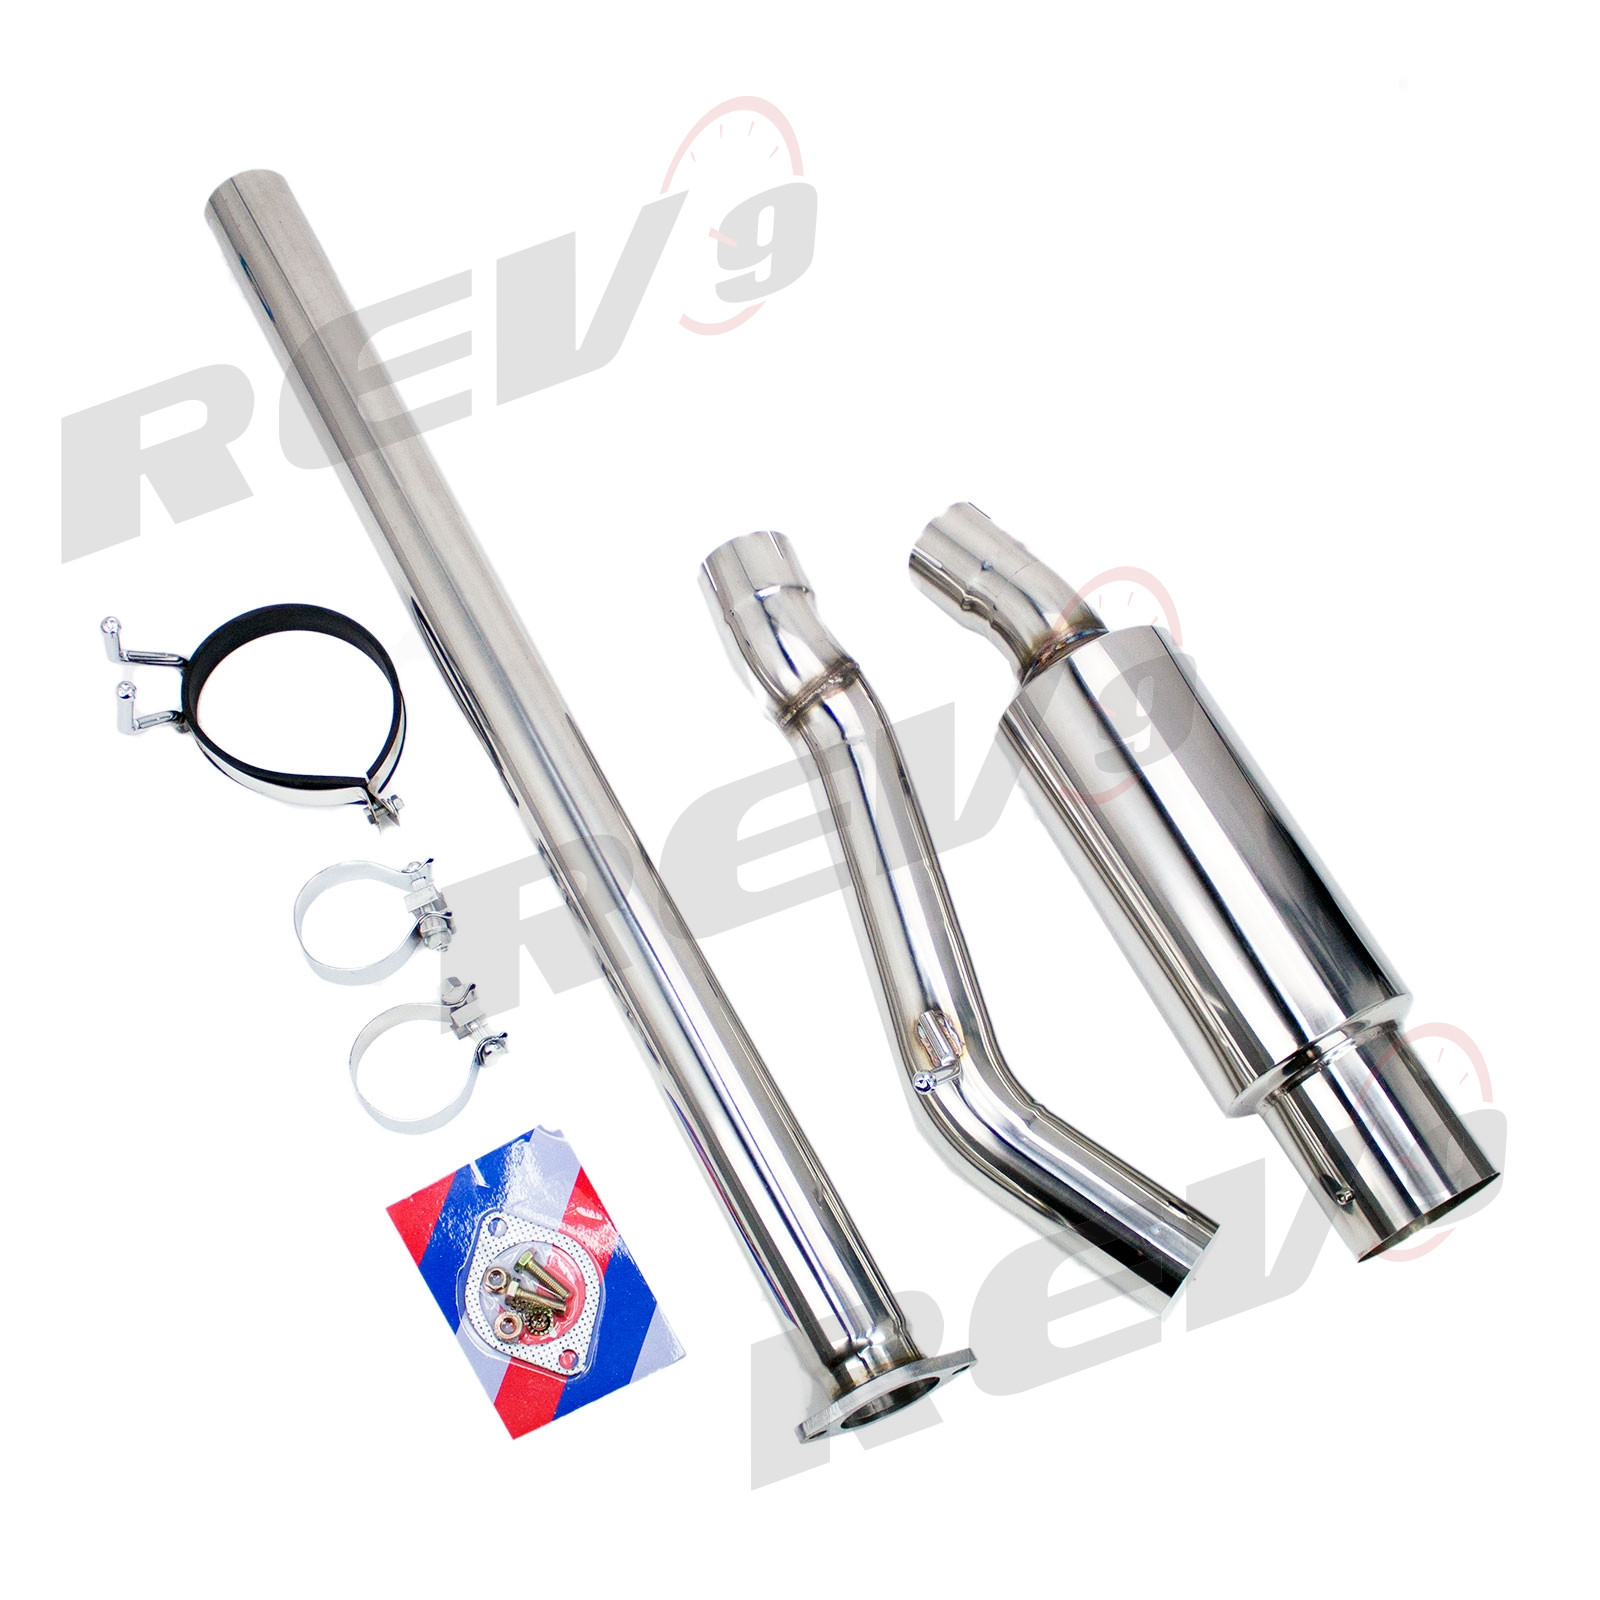 Rev9power Single Exit Cat Back Exhaust Kit Stainless Steel 3 Inch Pipe Mitsubishi Evolution